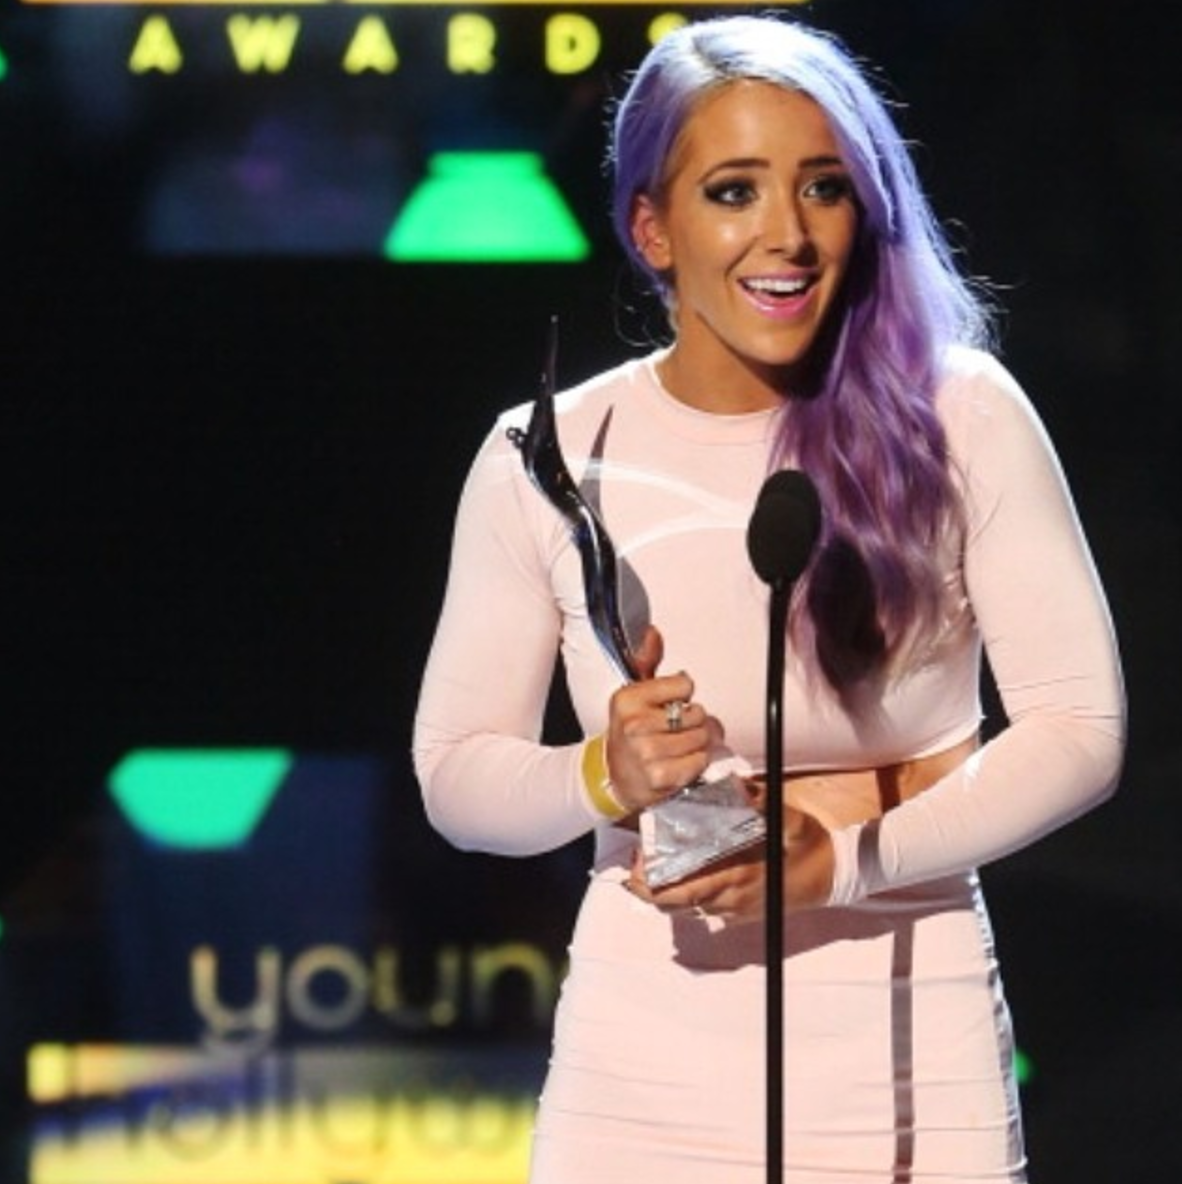 Who is Jenna Marbles? ENTITY discusses all we know about the YouTube sensation.